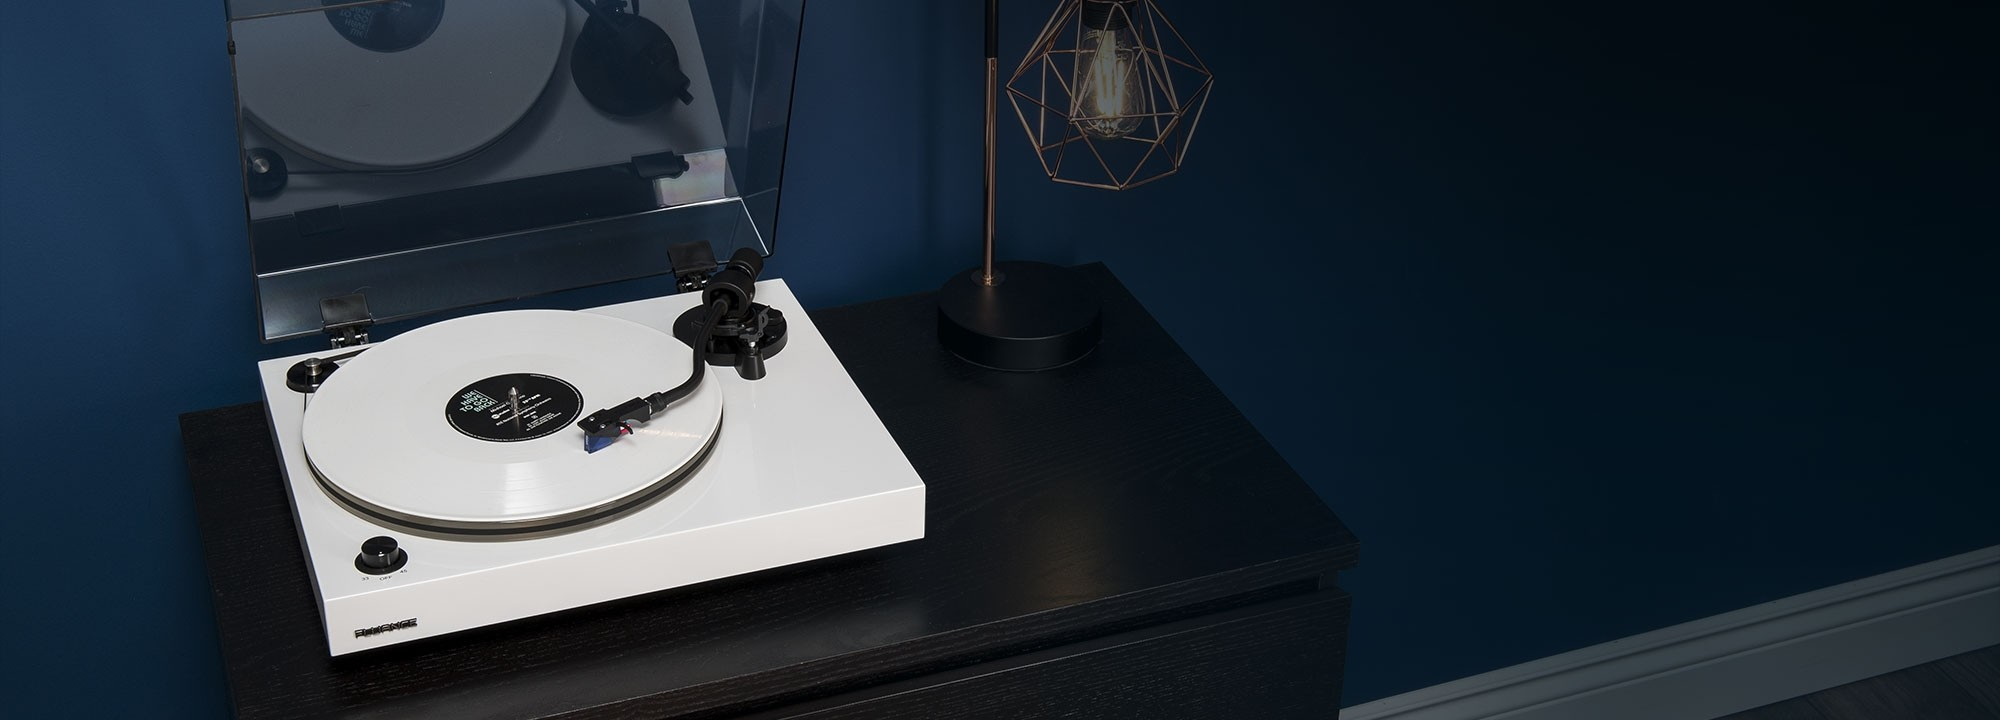 RT85WH Reference High Fidelity Vinyl Turntable - Lifestyle